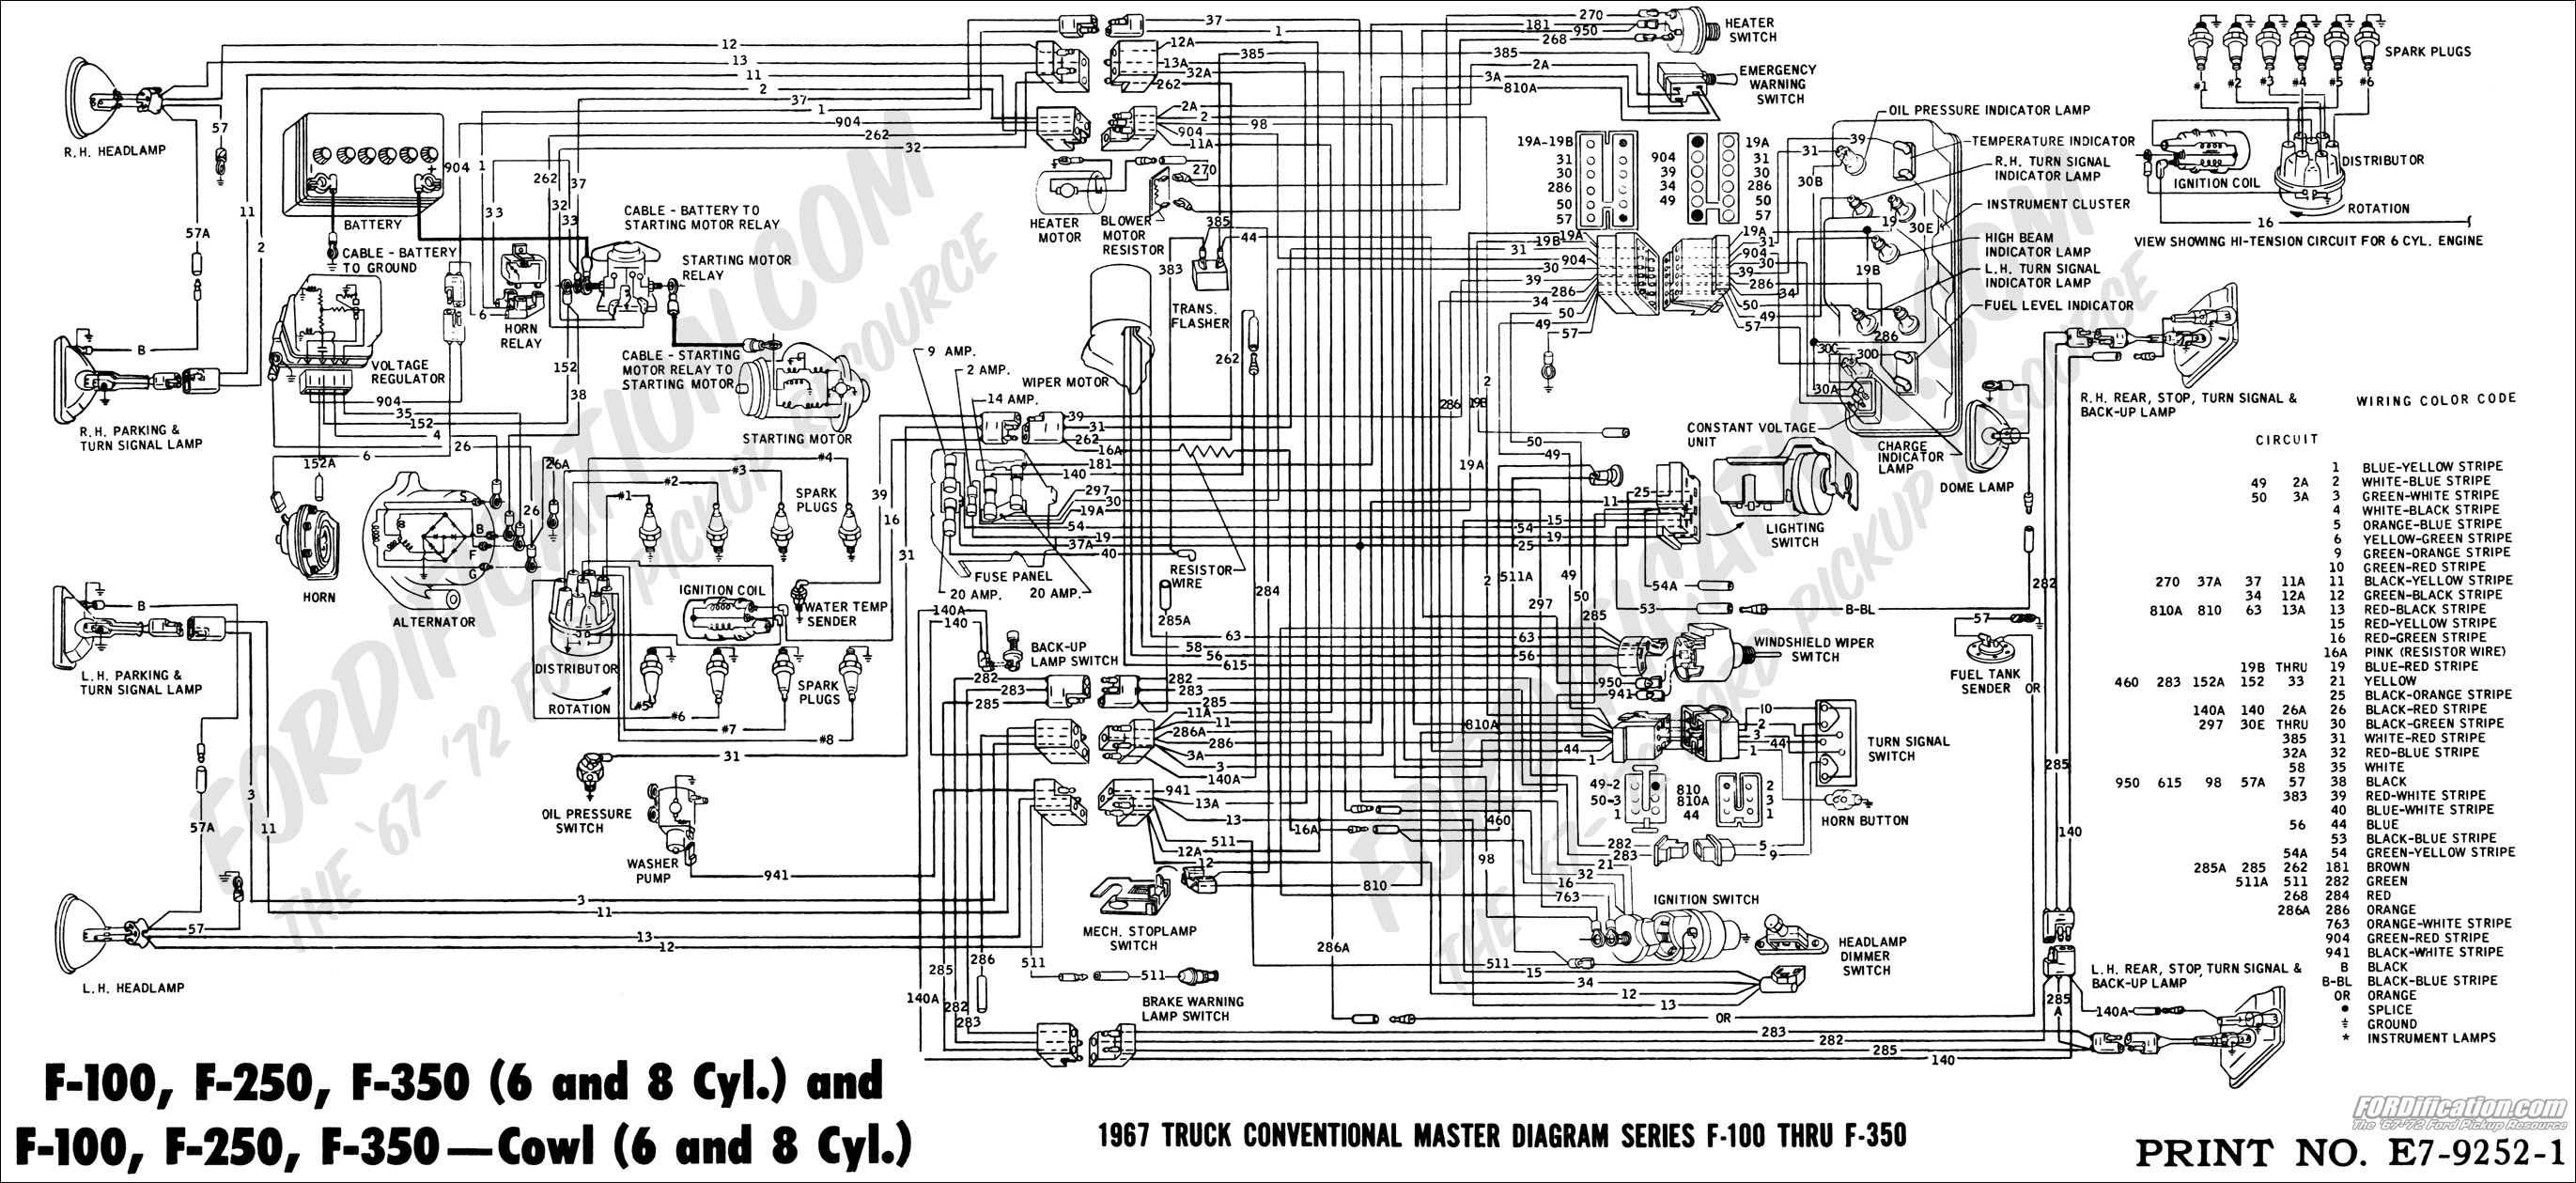 ford truck technical drawings and schematics section h ford l8000 wiring-diagram 71 ford truck wiring diagram #1